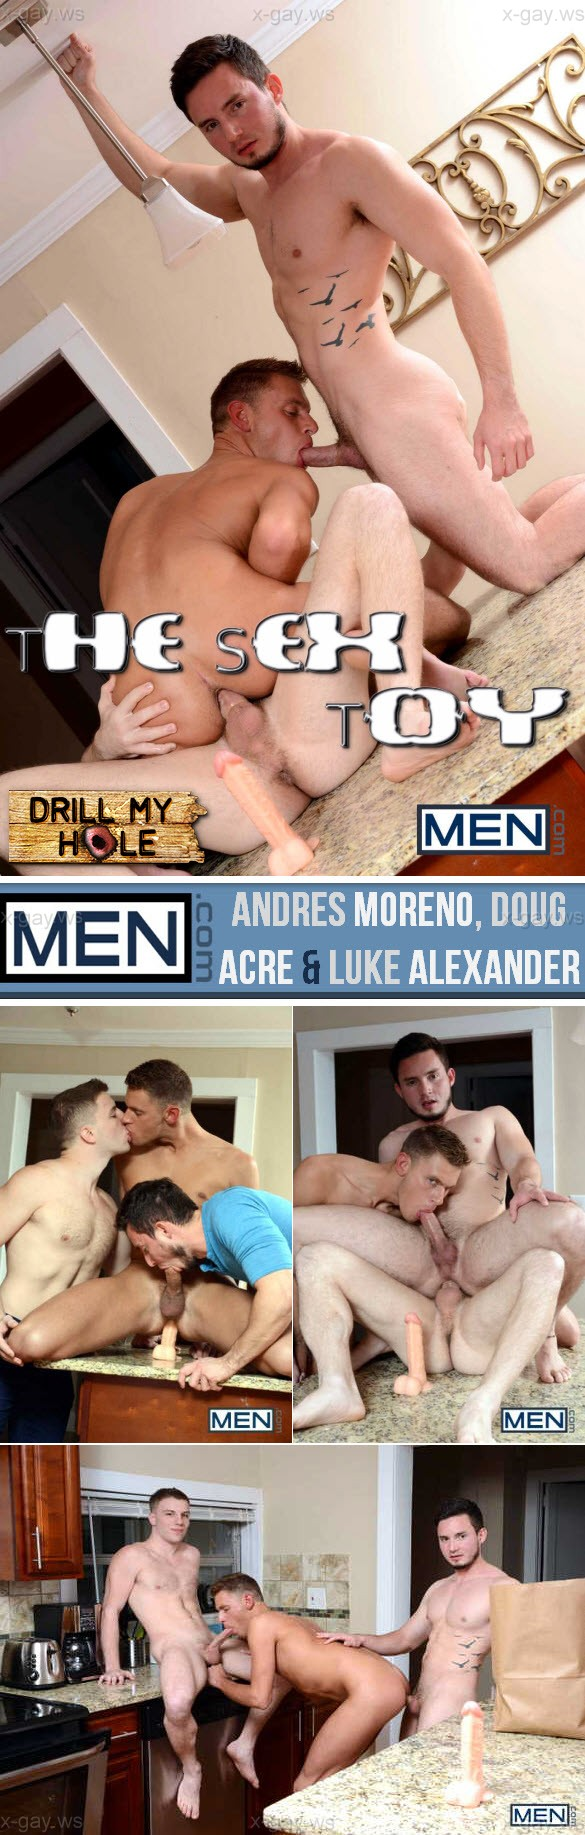 MEN – Drill My Hole – The Sex Toy: Andres Moreno, Doug Acre & Luke Alexander